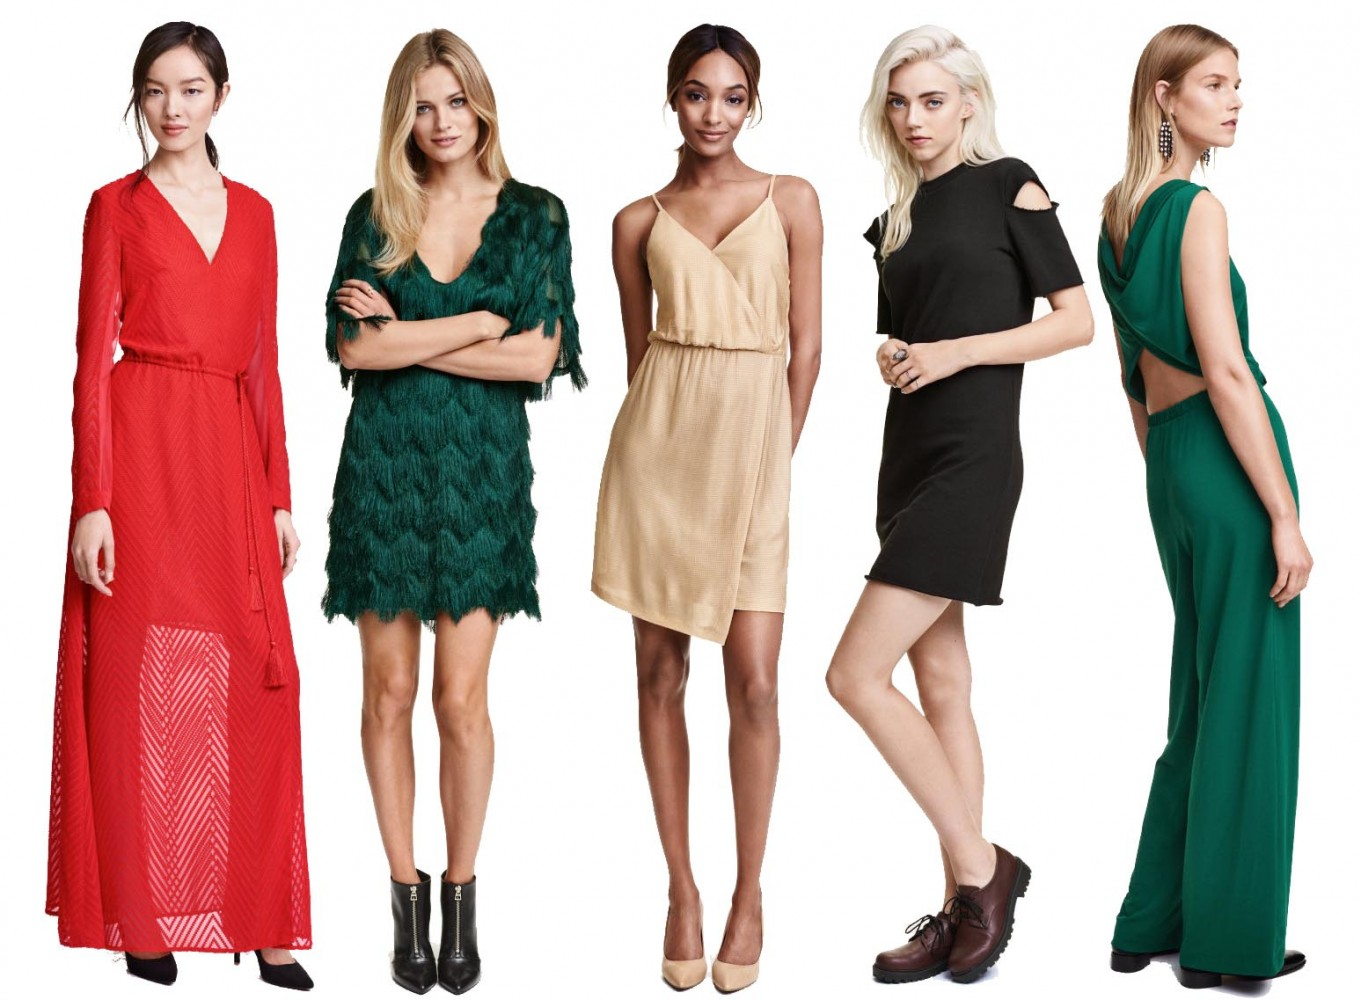 H&M Holiday Dresses 2015